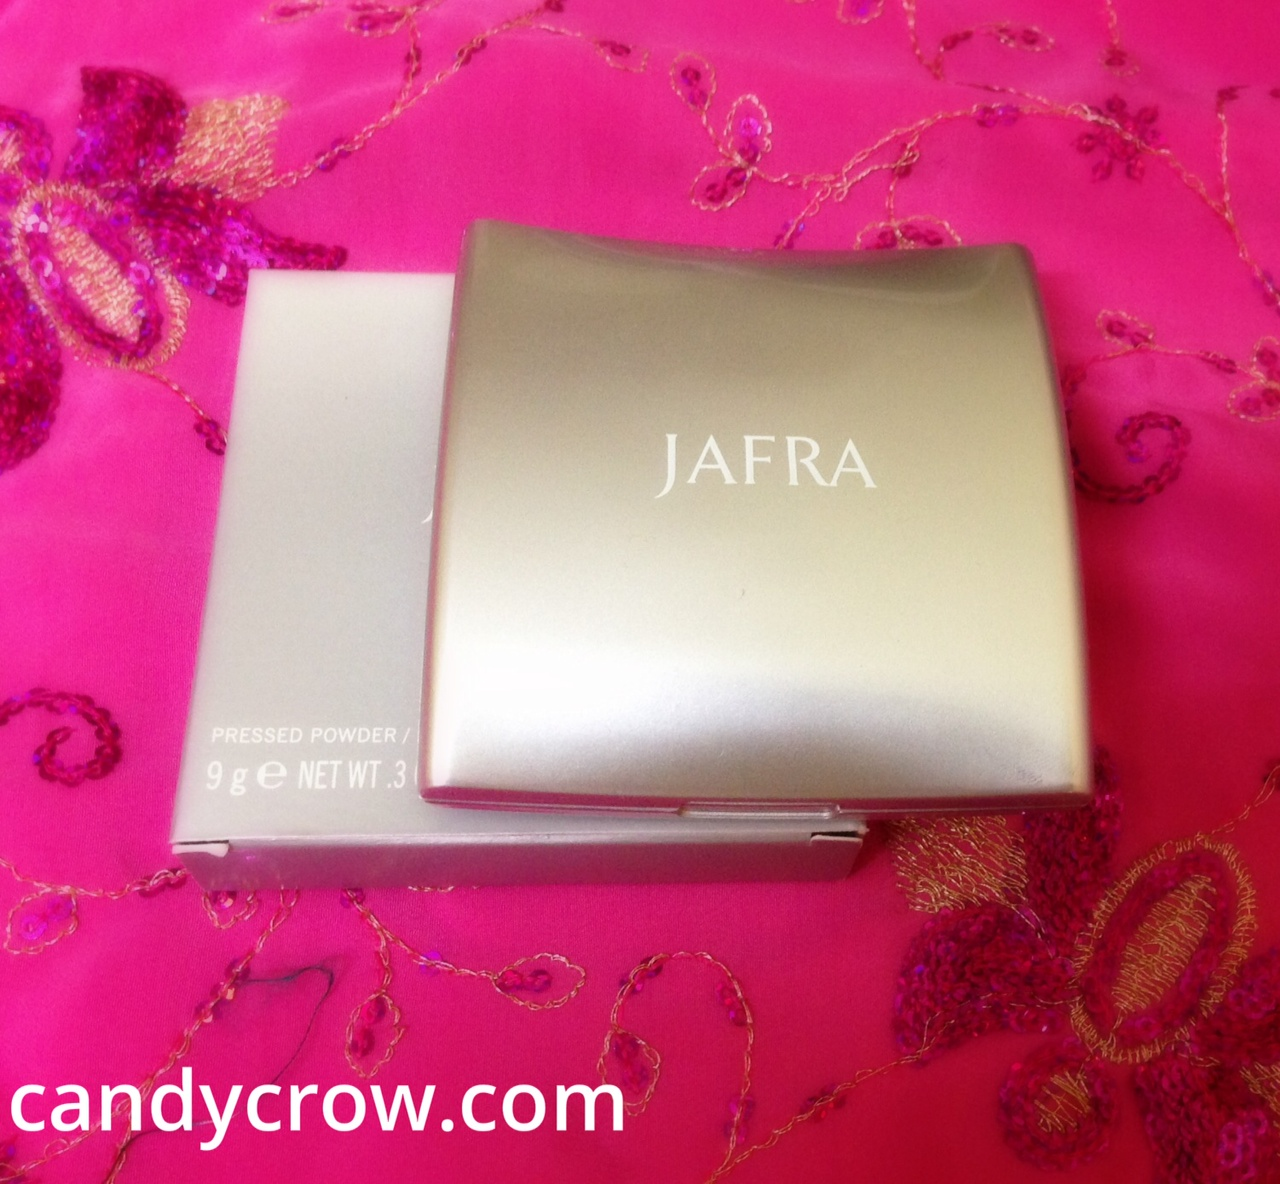 Jafra Pressed Powder Review